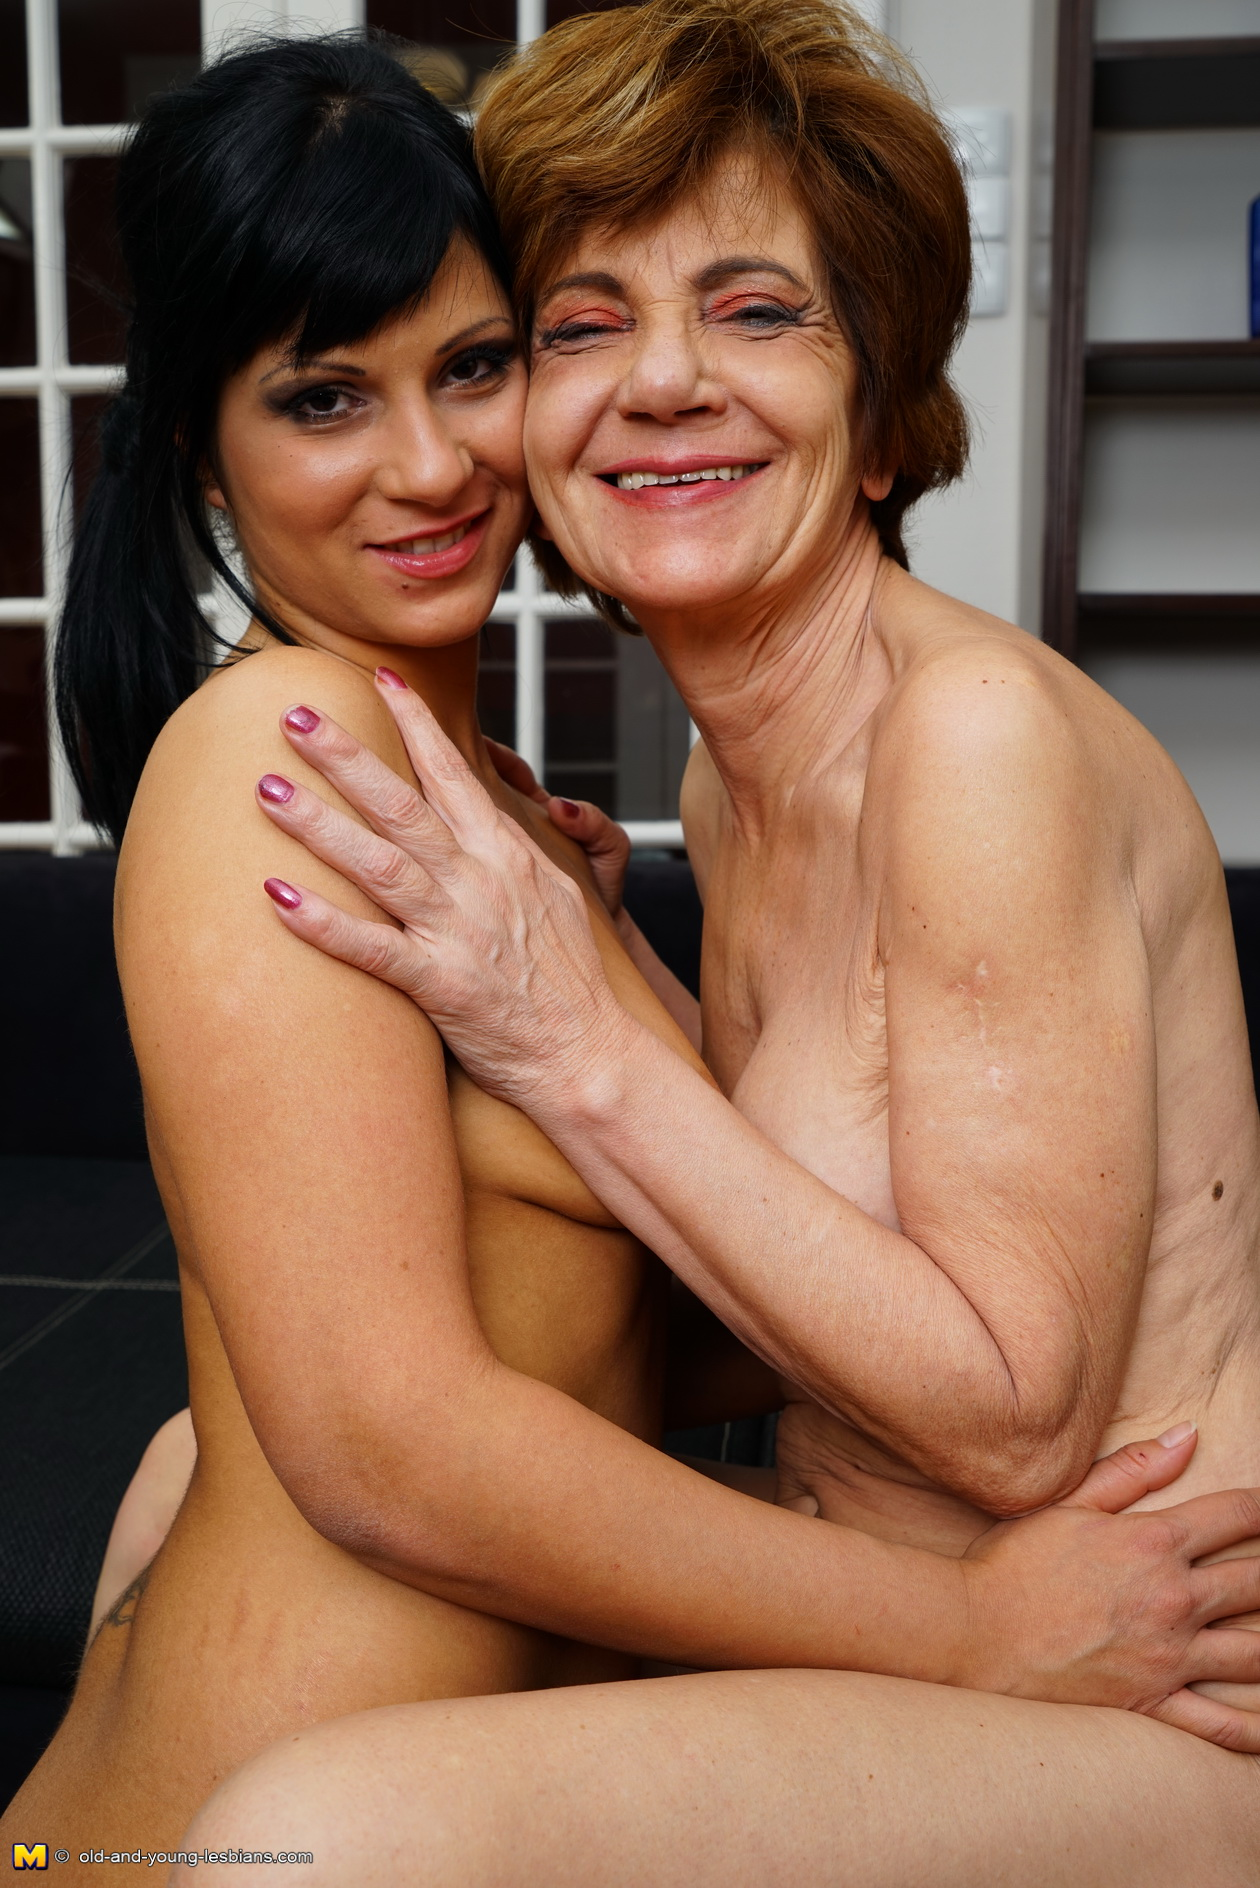 hairy old and young lesbians | the hairy lady blog